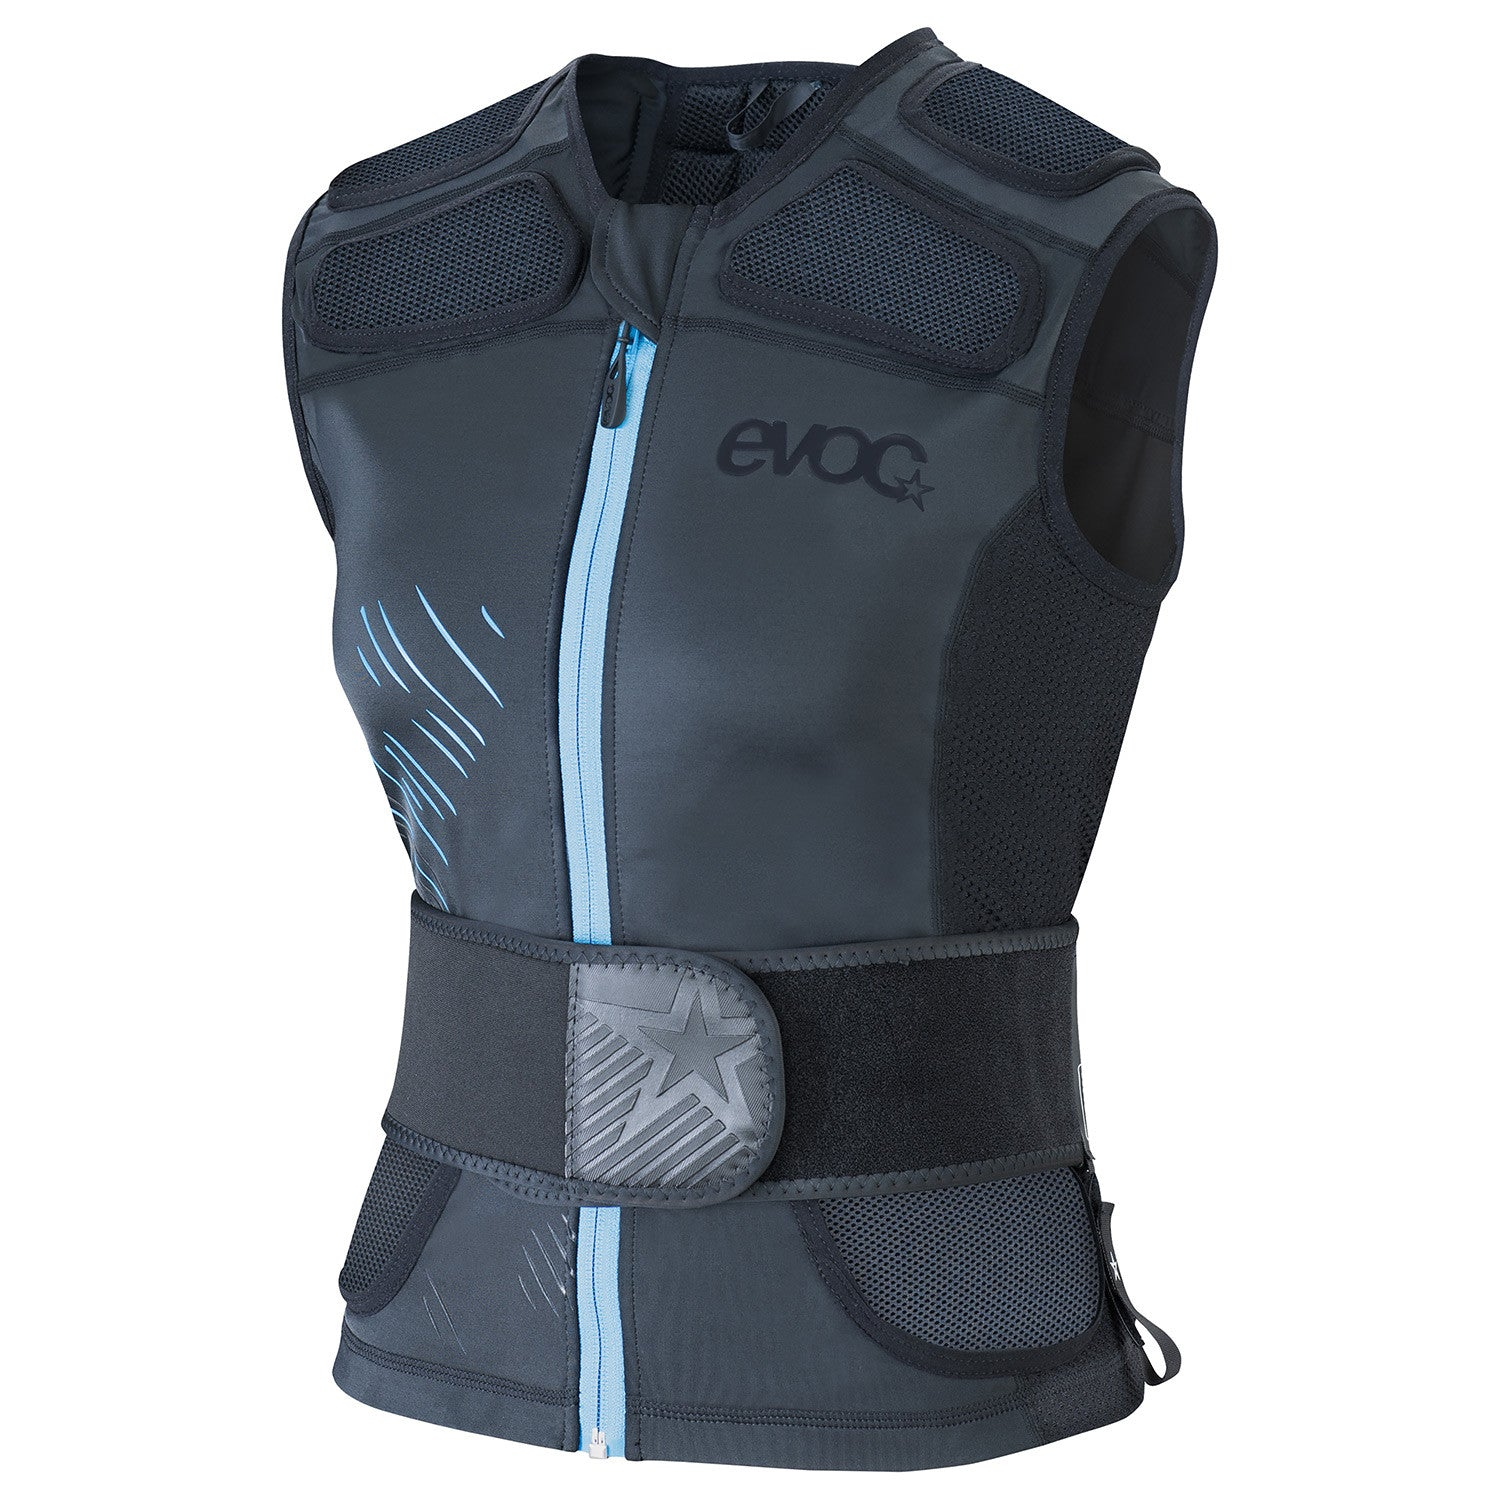 Protector Vest Air+ Women- Black by EVOC